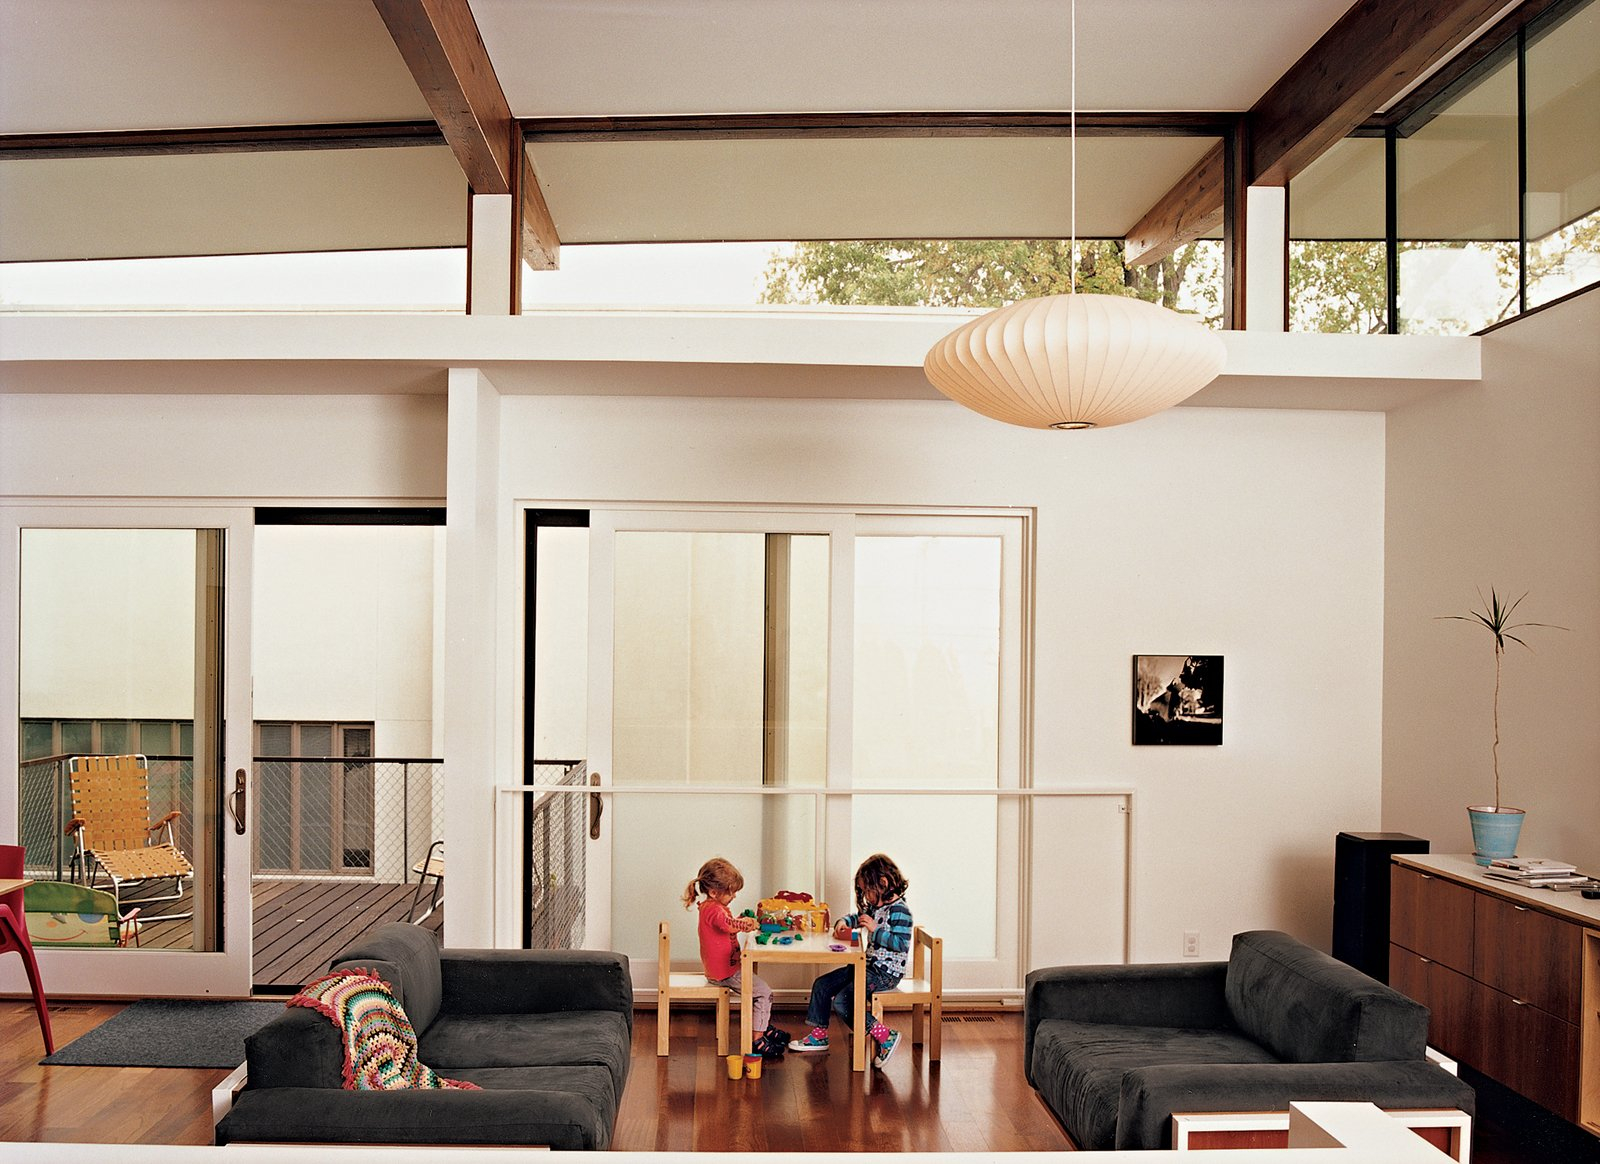 Living Room, Pendant Lighting, and Sofa Judith and Maple at work in the living space, which has a deck off the side and a view of the neighbors' house.  Let It Shine: 7 Elegant Clerestory Windows by William Lamb from Affordable, SIP-Built Family Home in Kansas City